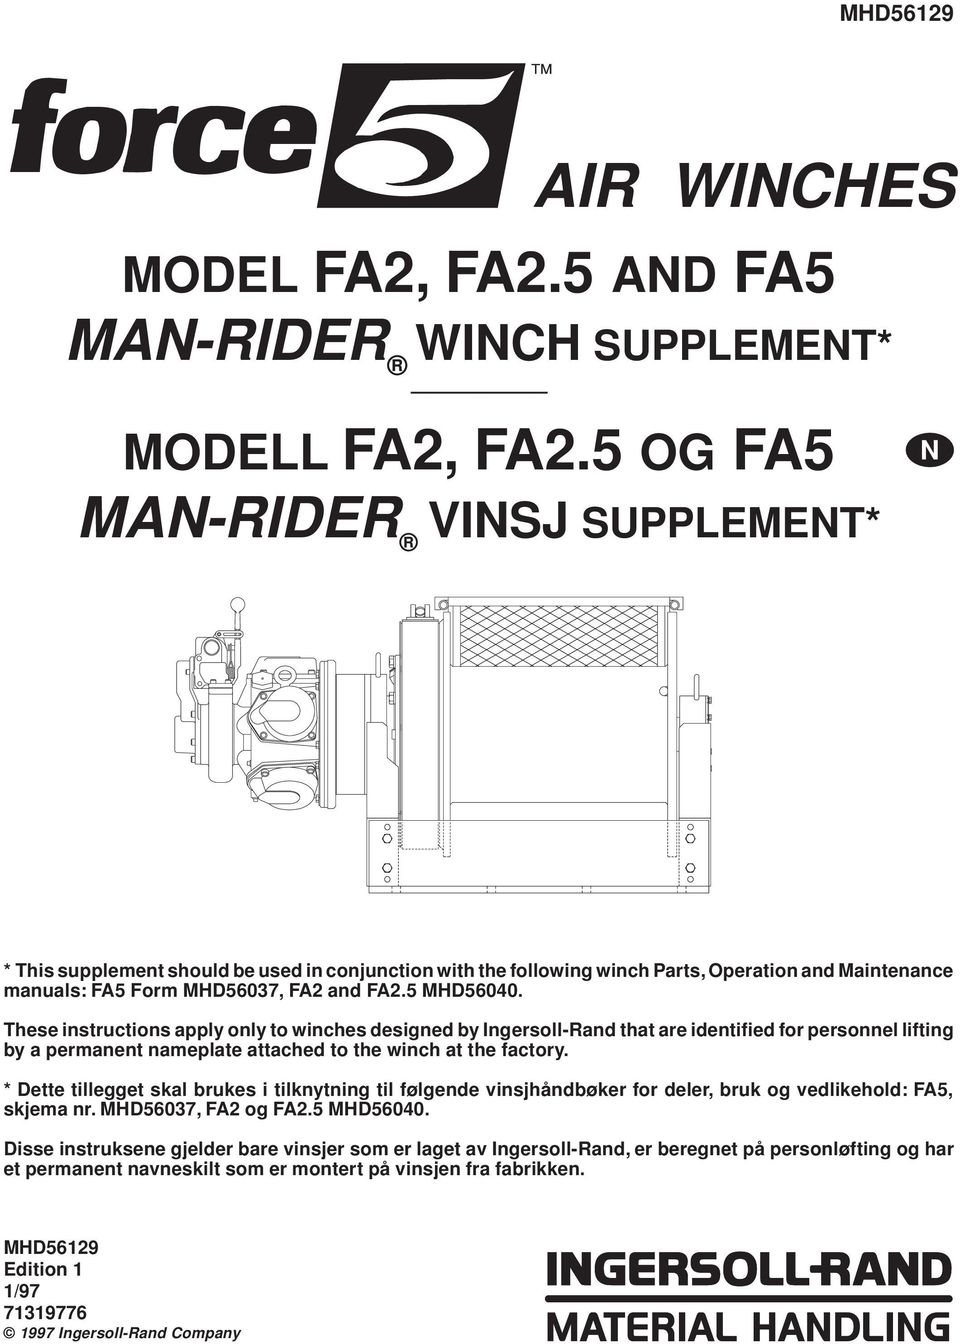 These instructions apply only to winches designed by Ingersoll-Rand that are identified for personnel lifting by a permanent nameplate attached to the winch at the factory.